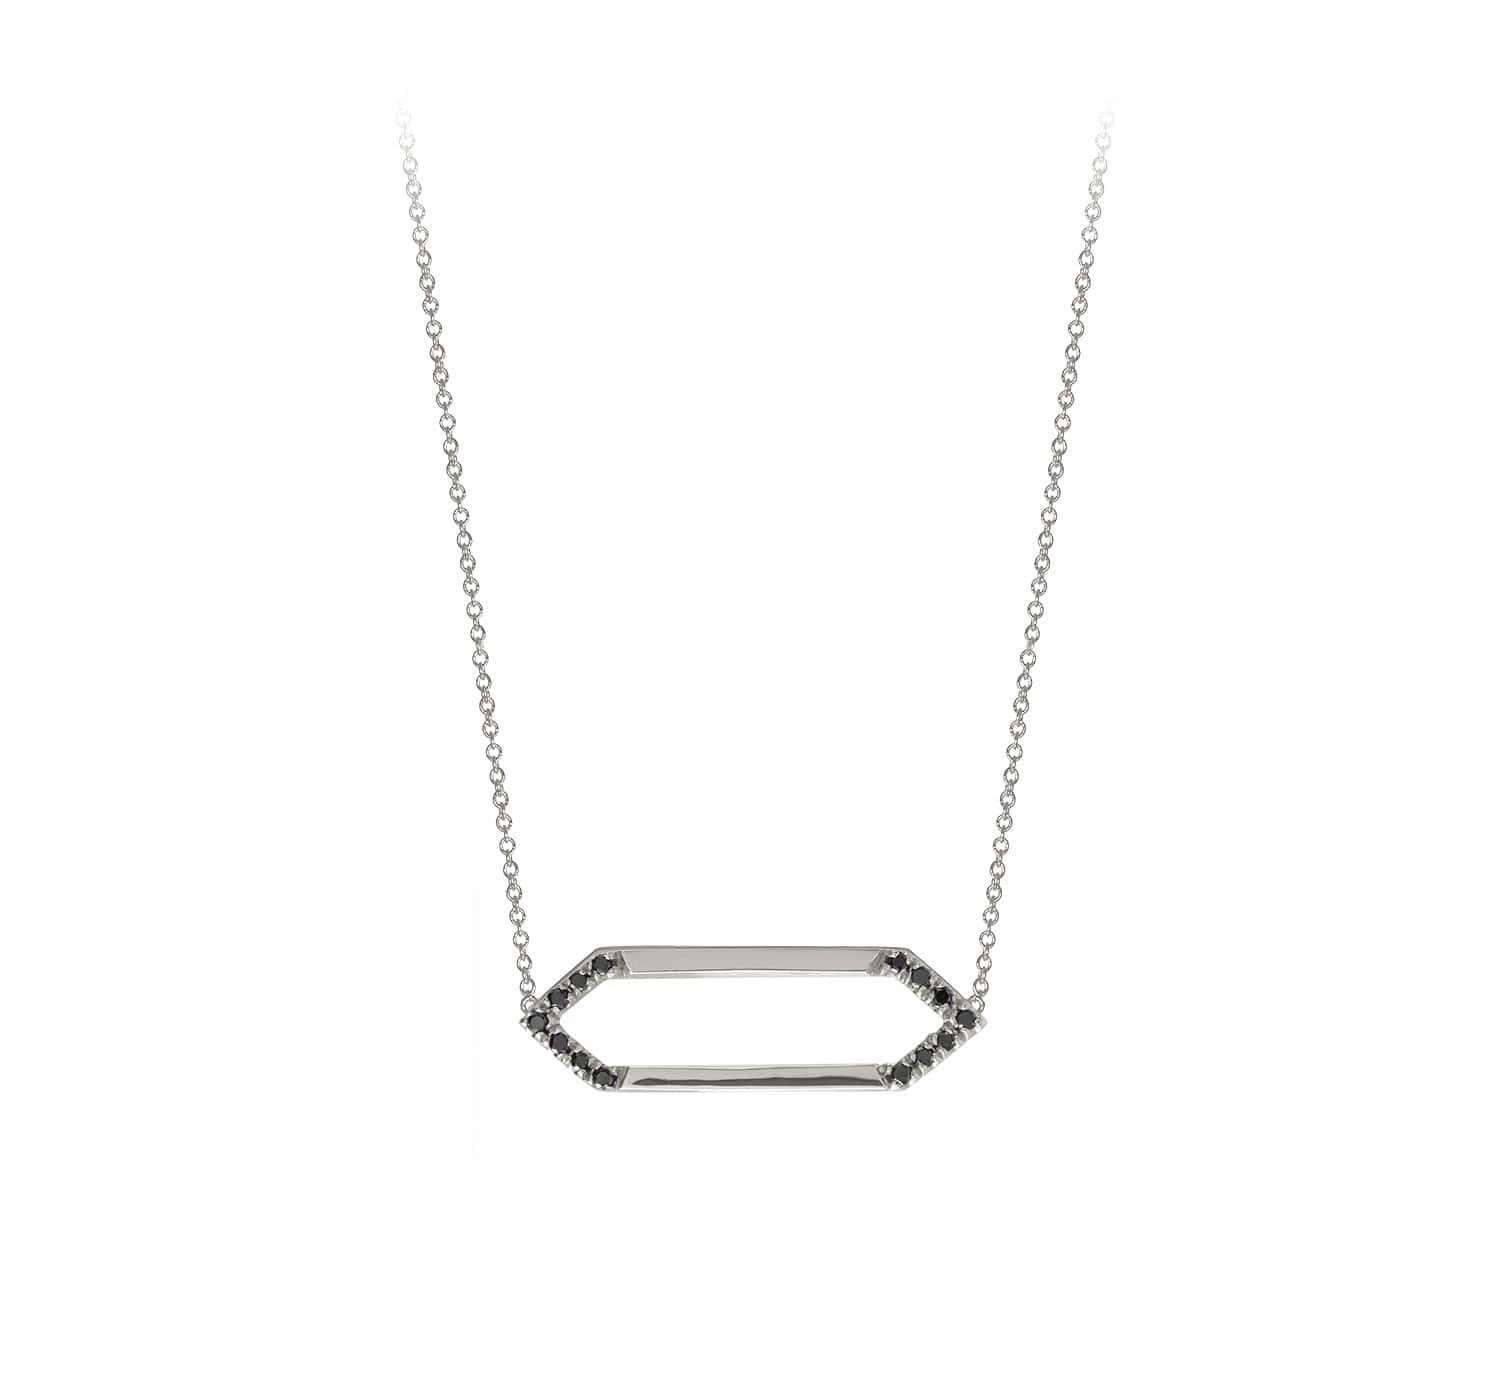 Mini Marquis Necklace | 14K White Gold with Black Diamonds